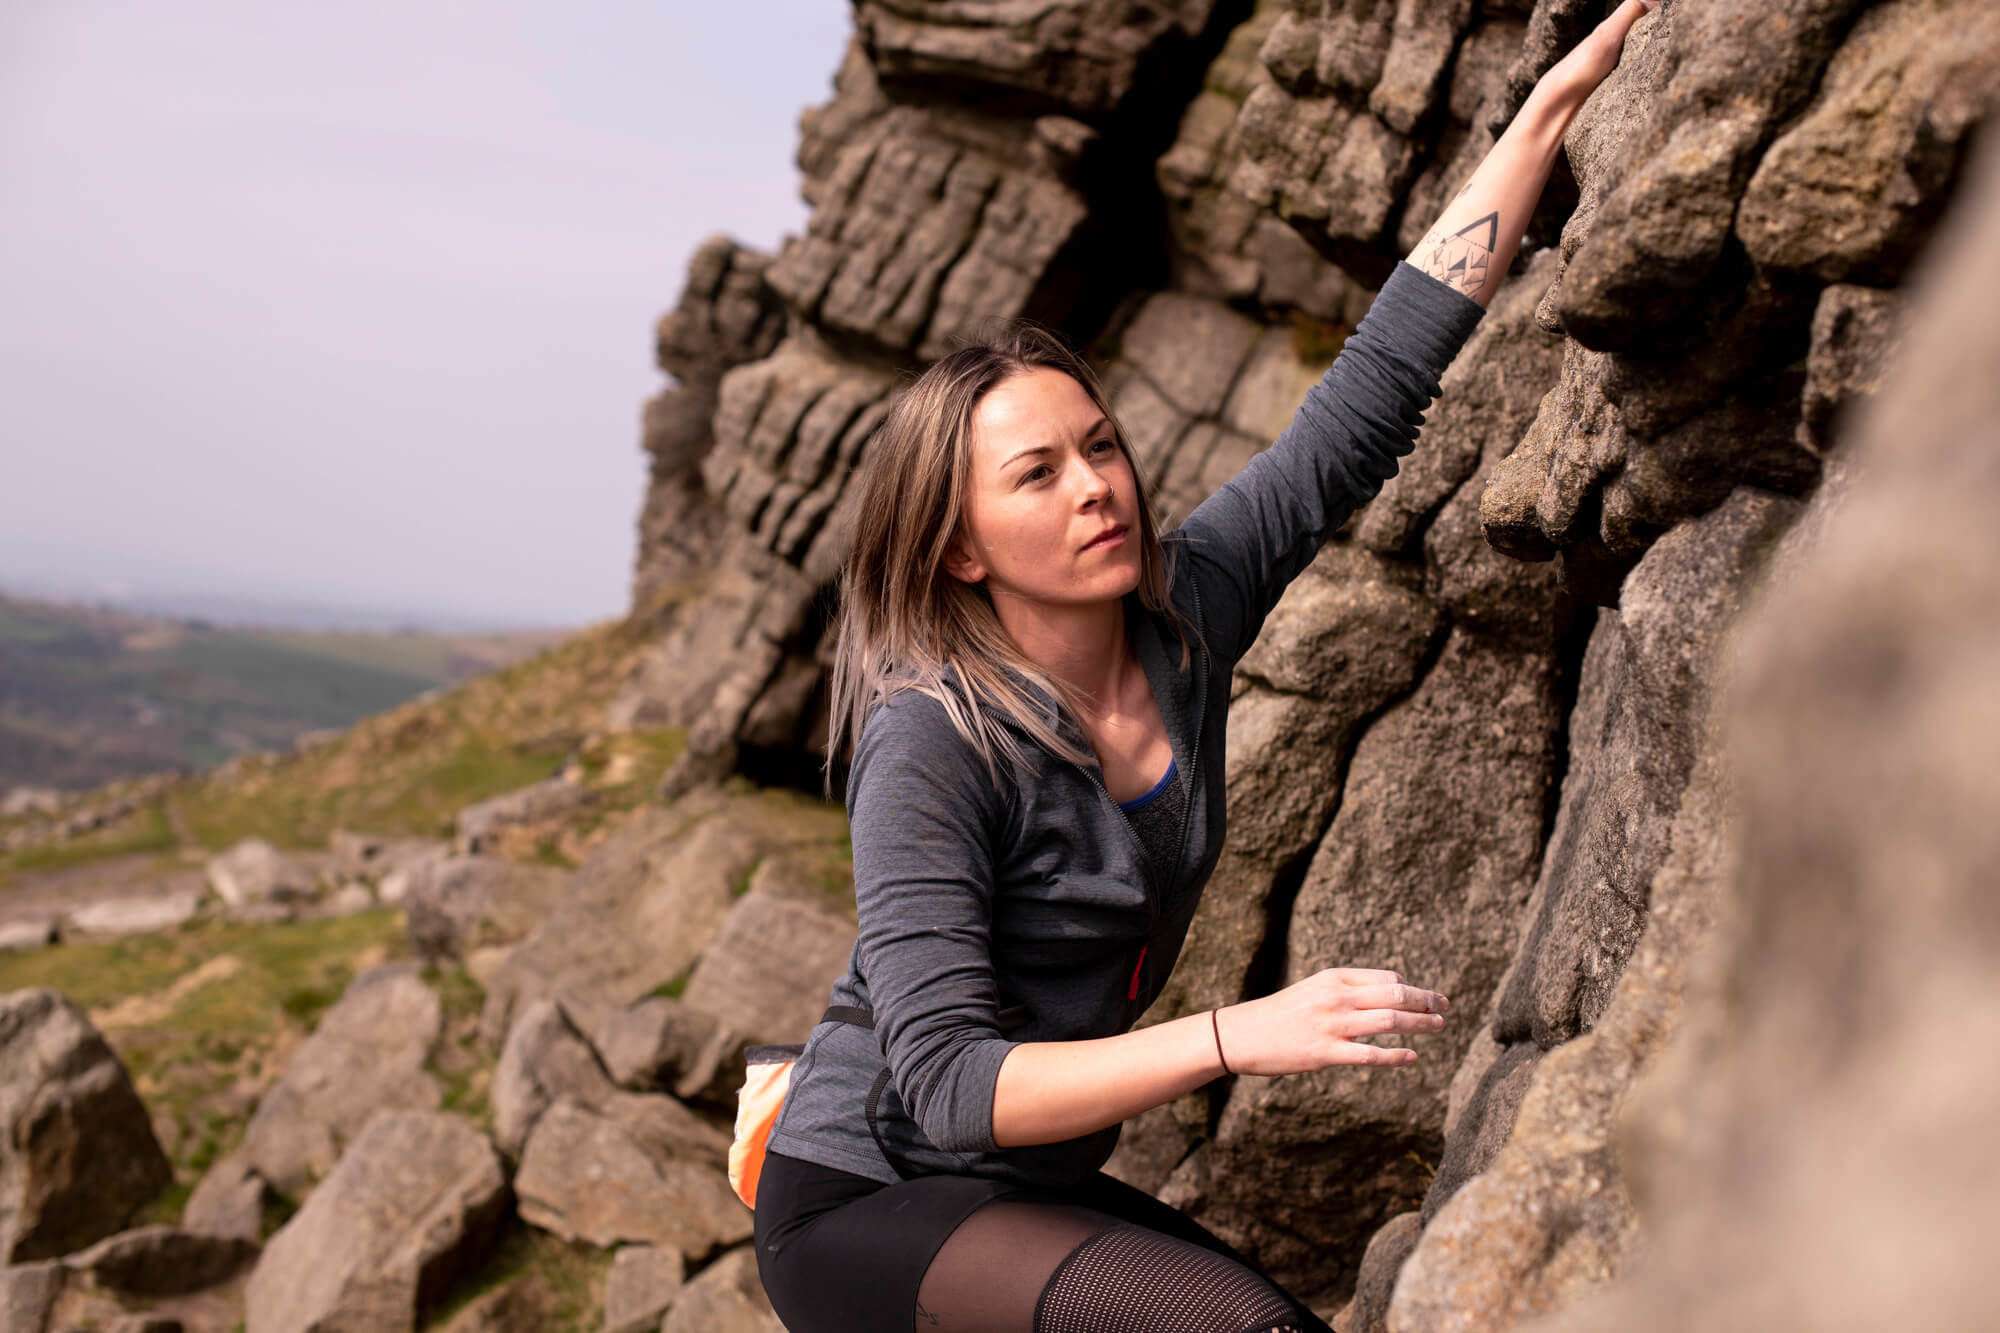 A University of Derby Outdoor student climbs rocks concentrating on her next move